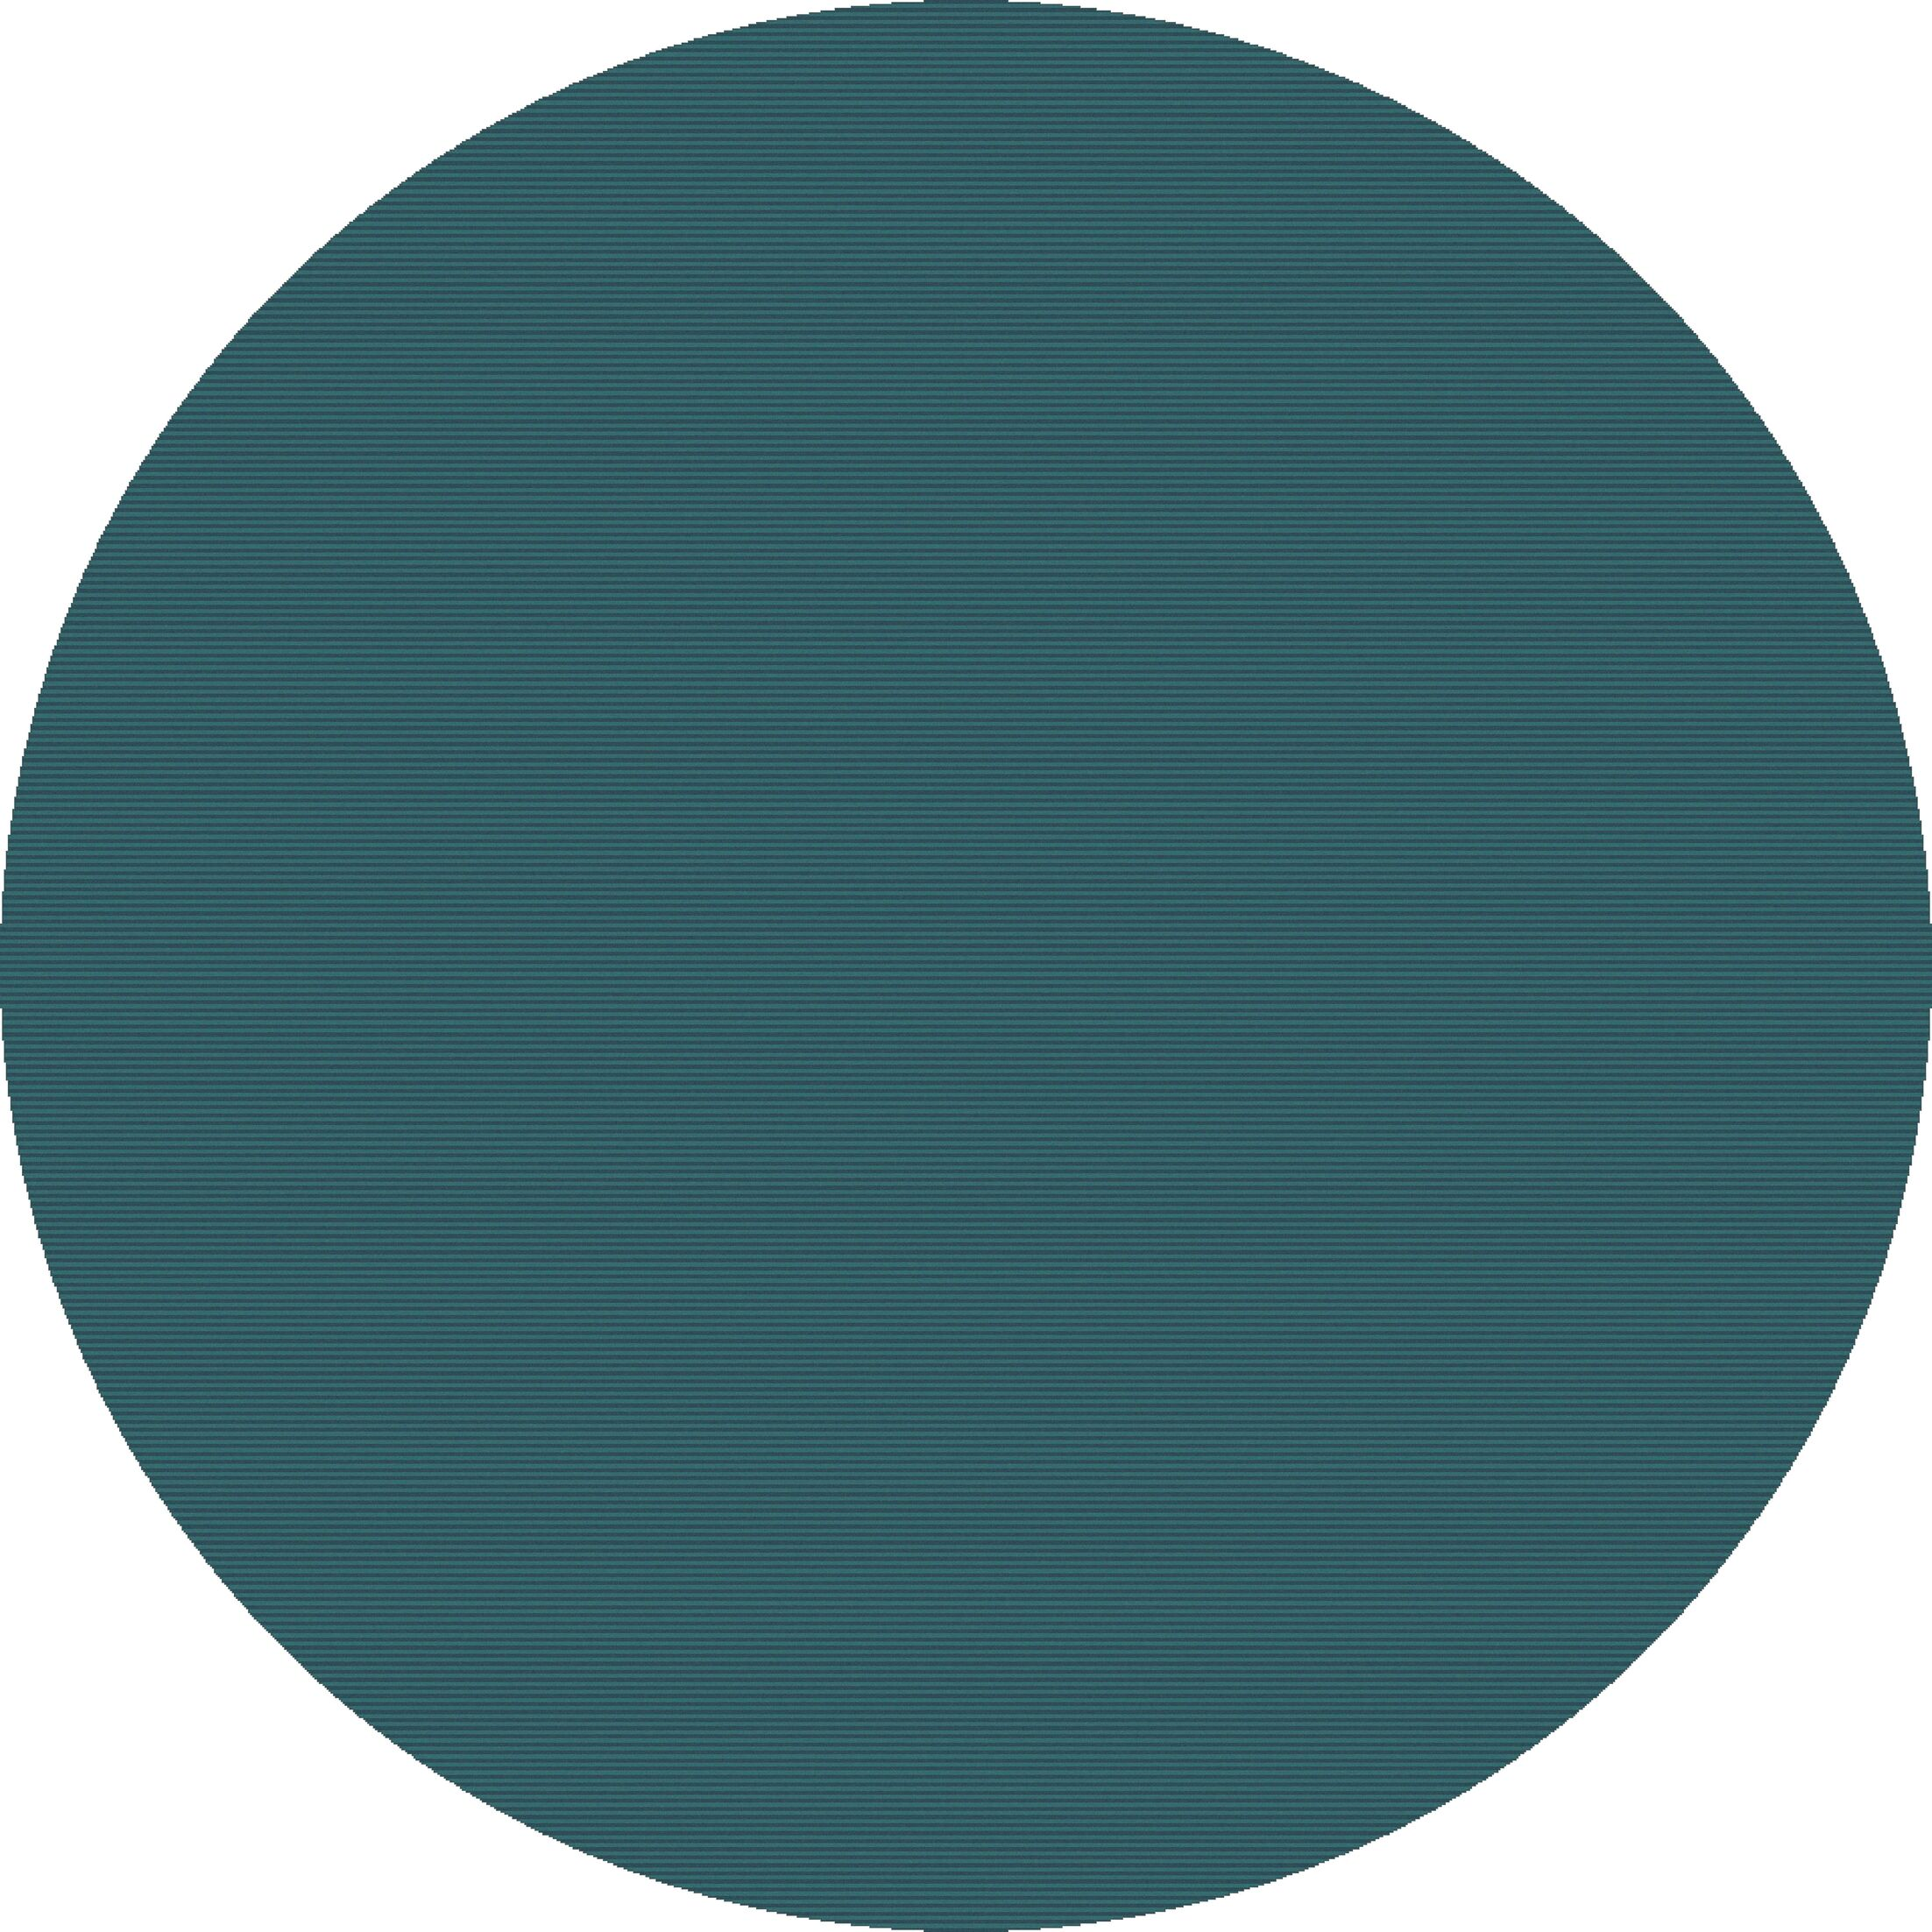 Naples Hand Woven Teal Area Rug Rug Size: Round 8'